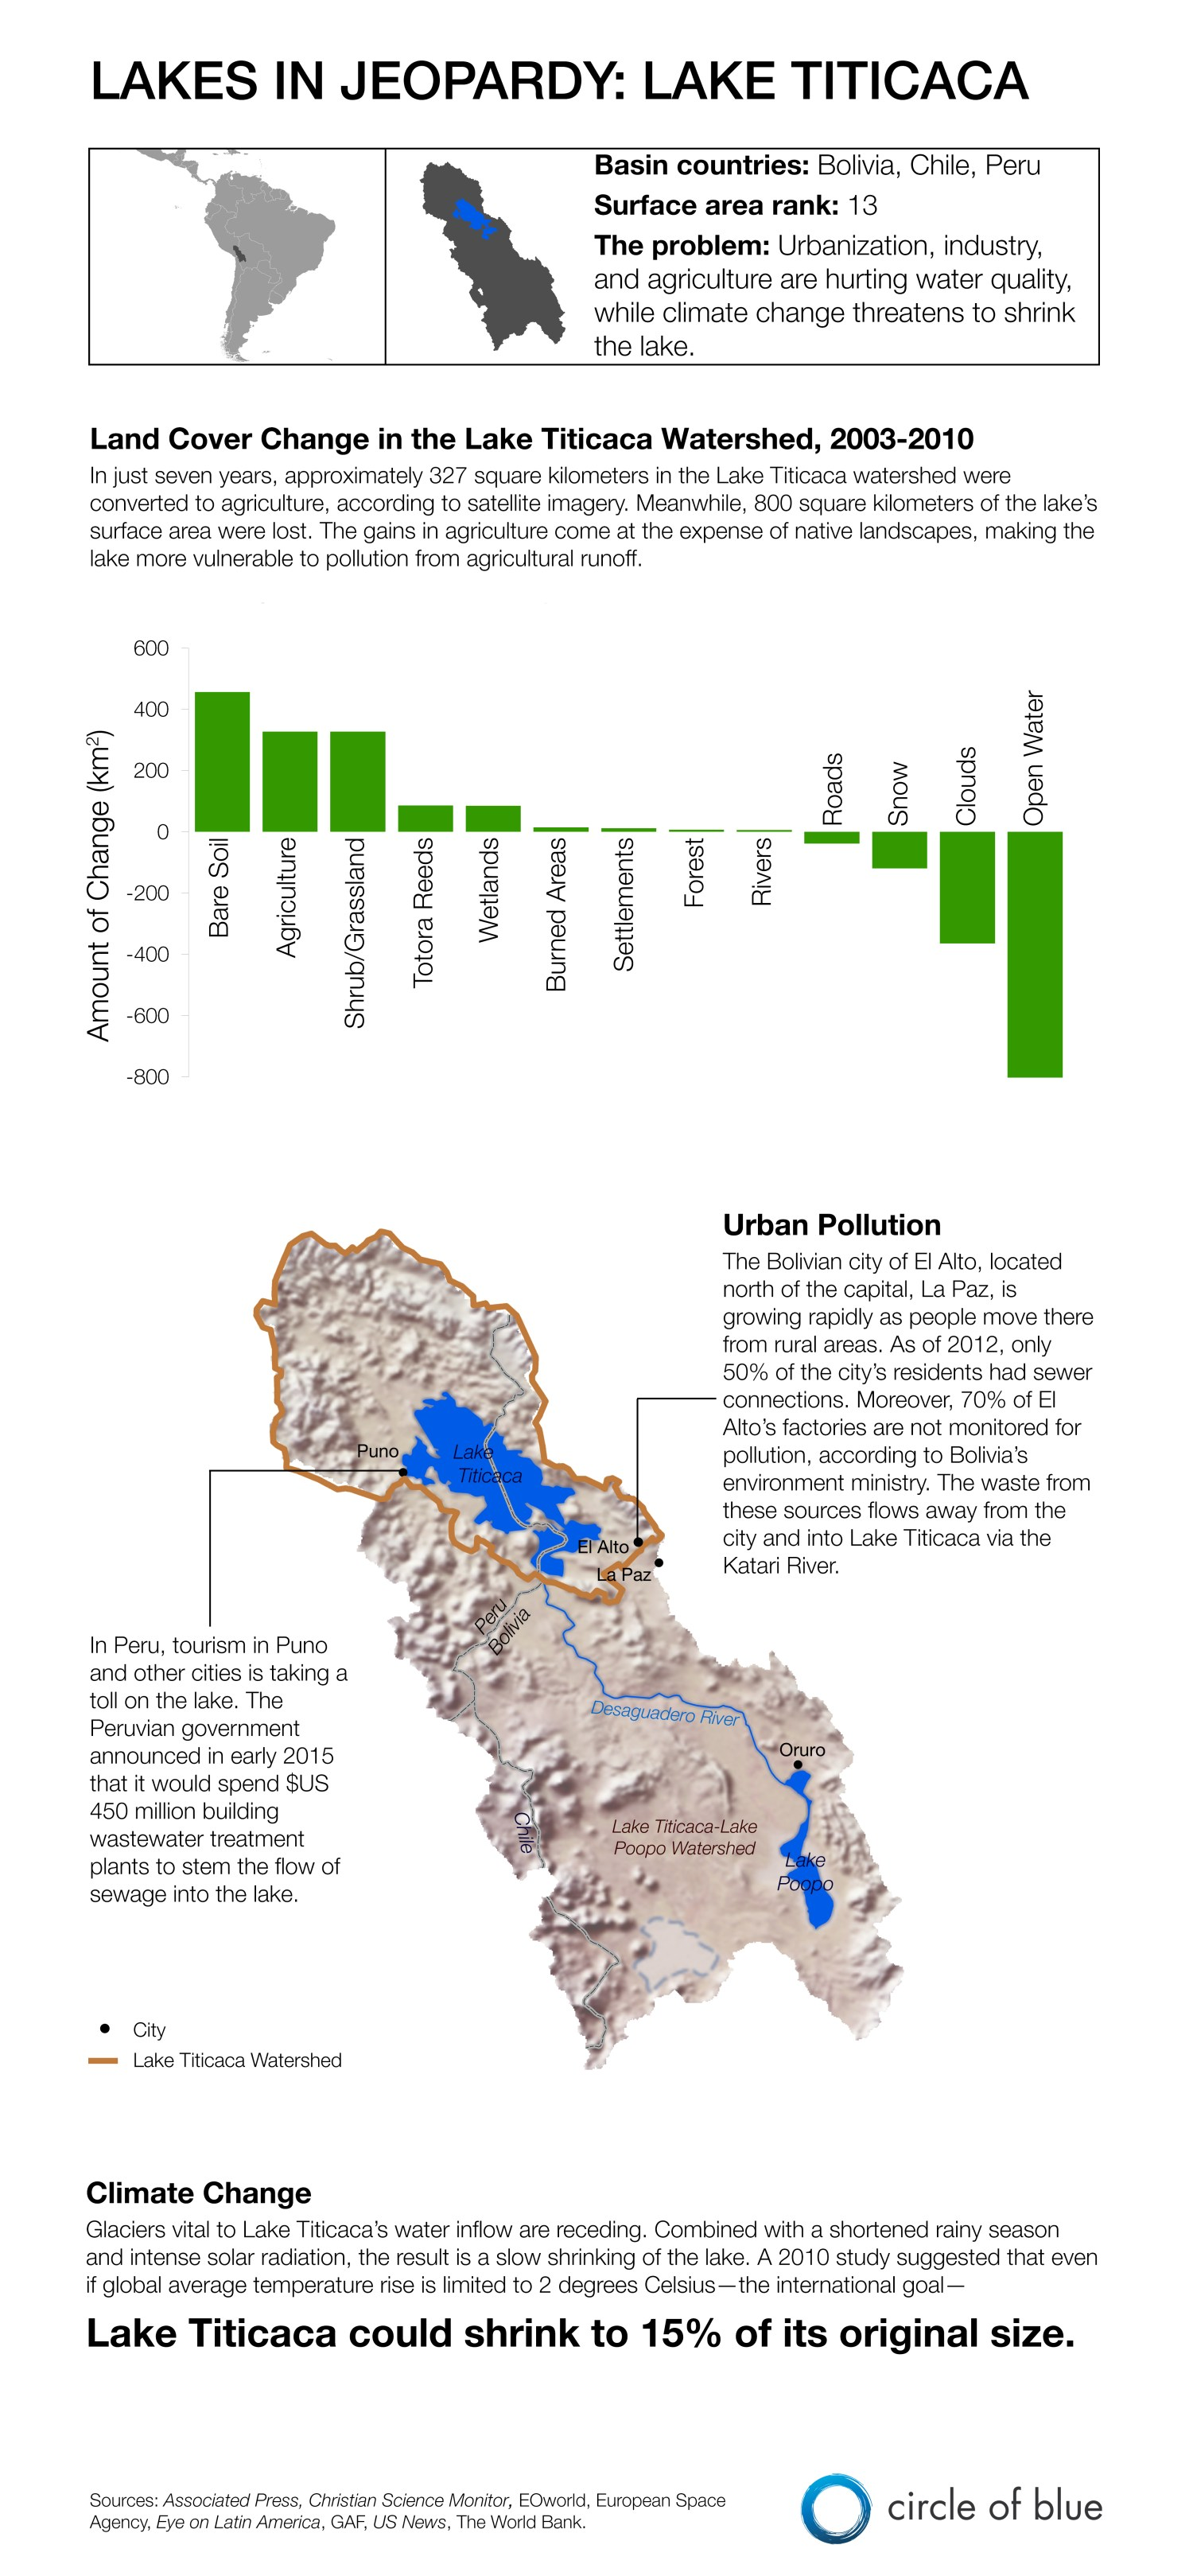 Infographic Graphic Map Lake Titicaca Bolivia Peru South America water pollution water quality sewage agriculture land use change Lakes In Jeopardy climate change glaciers shrinking lake Kaye LaFond Circle of Blue